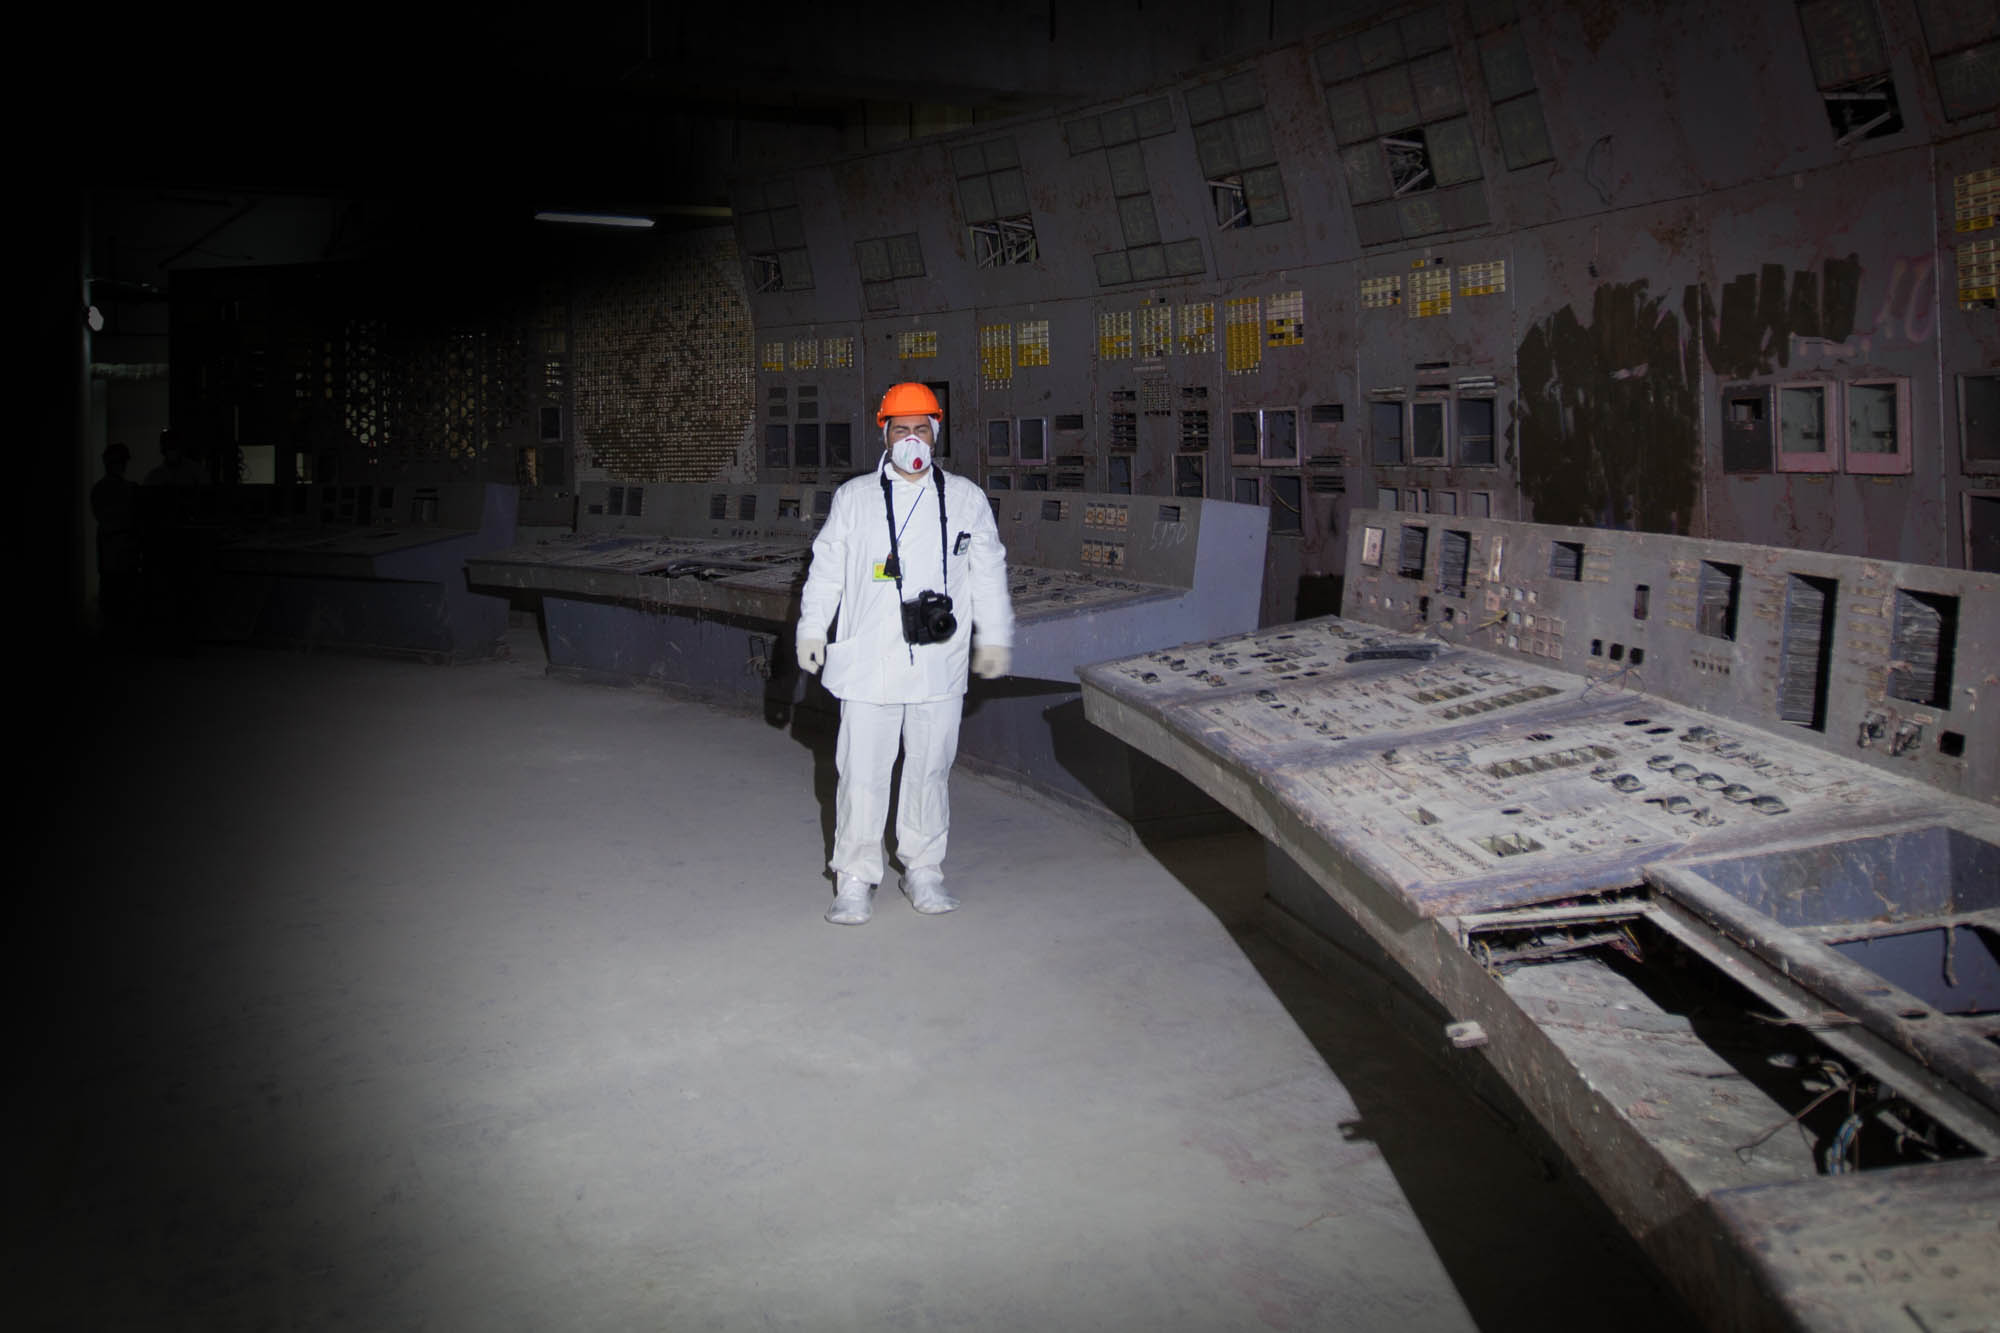 Standing in Chernobyl Reactor No. 4 Control Room